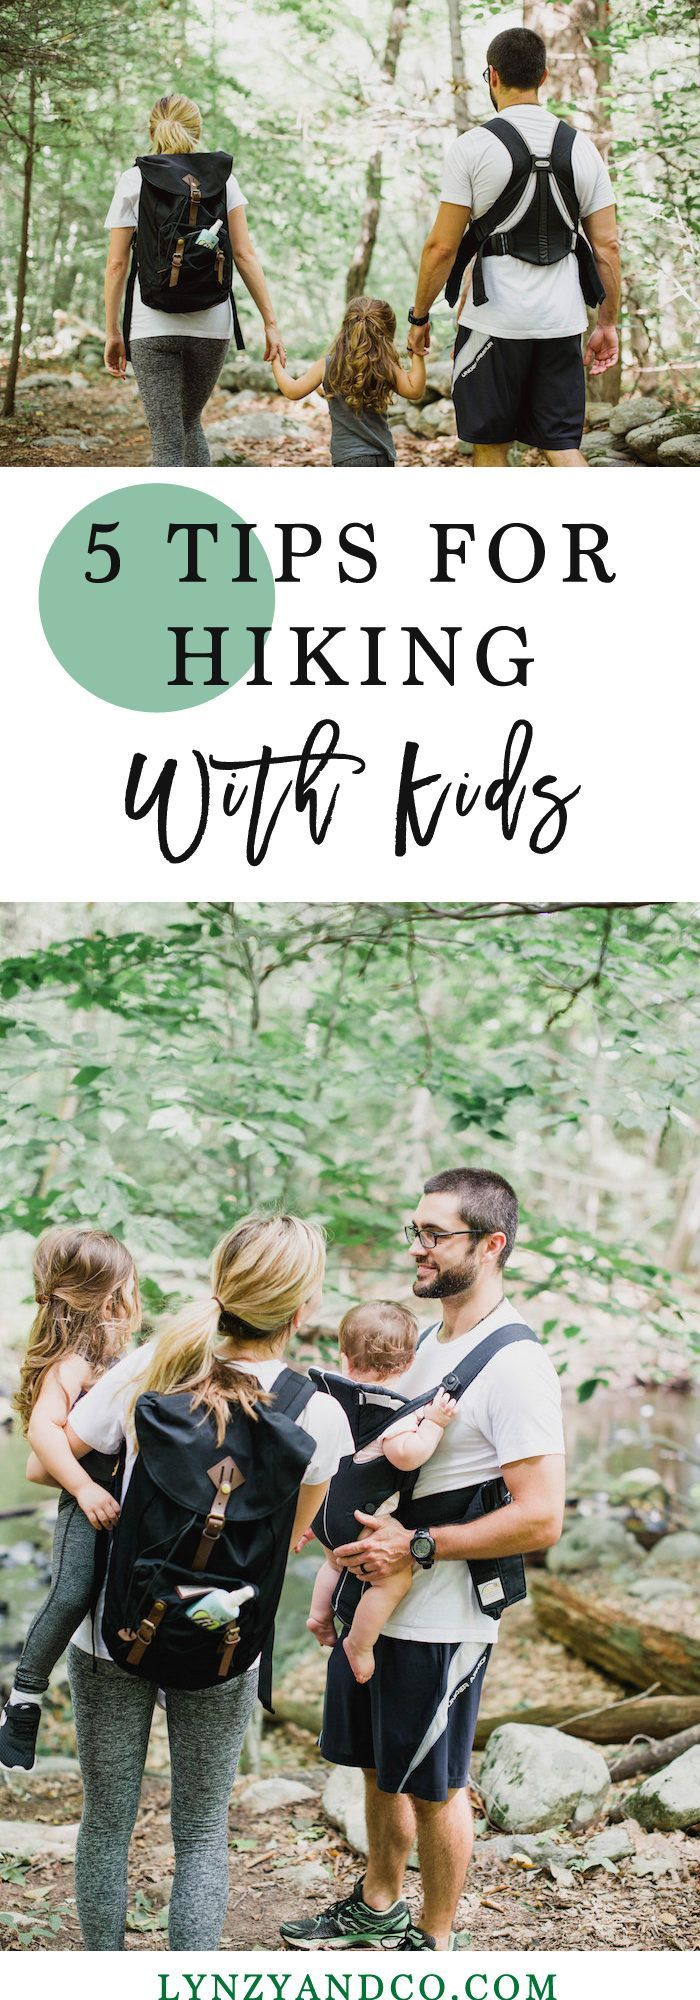 5 TIPS FOR HIKING WITH KIDS